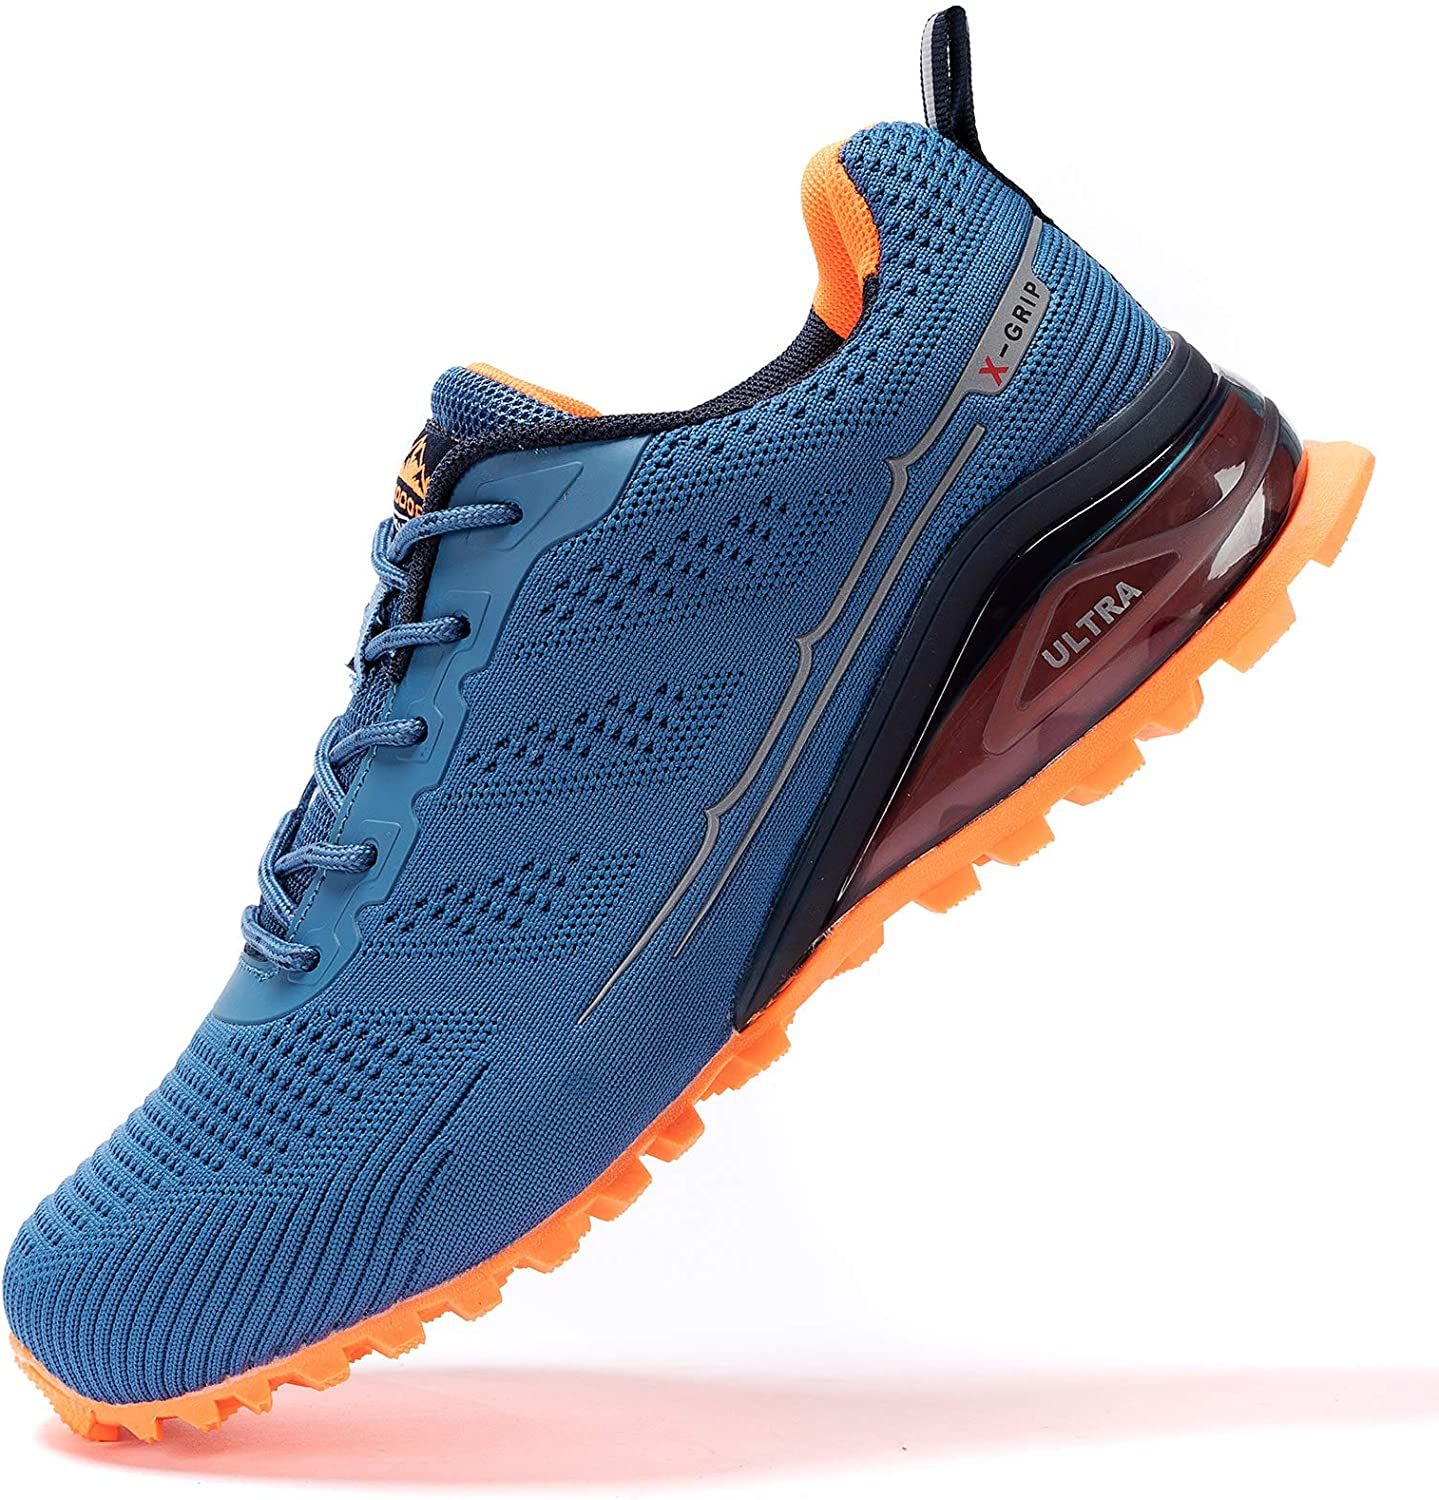 Kricely All stores are sold Men's Trail Running Shoes Me Casual for Directly managed store Sneakers Fashion